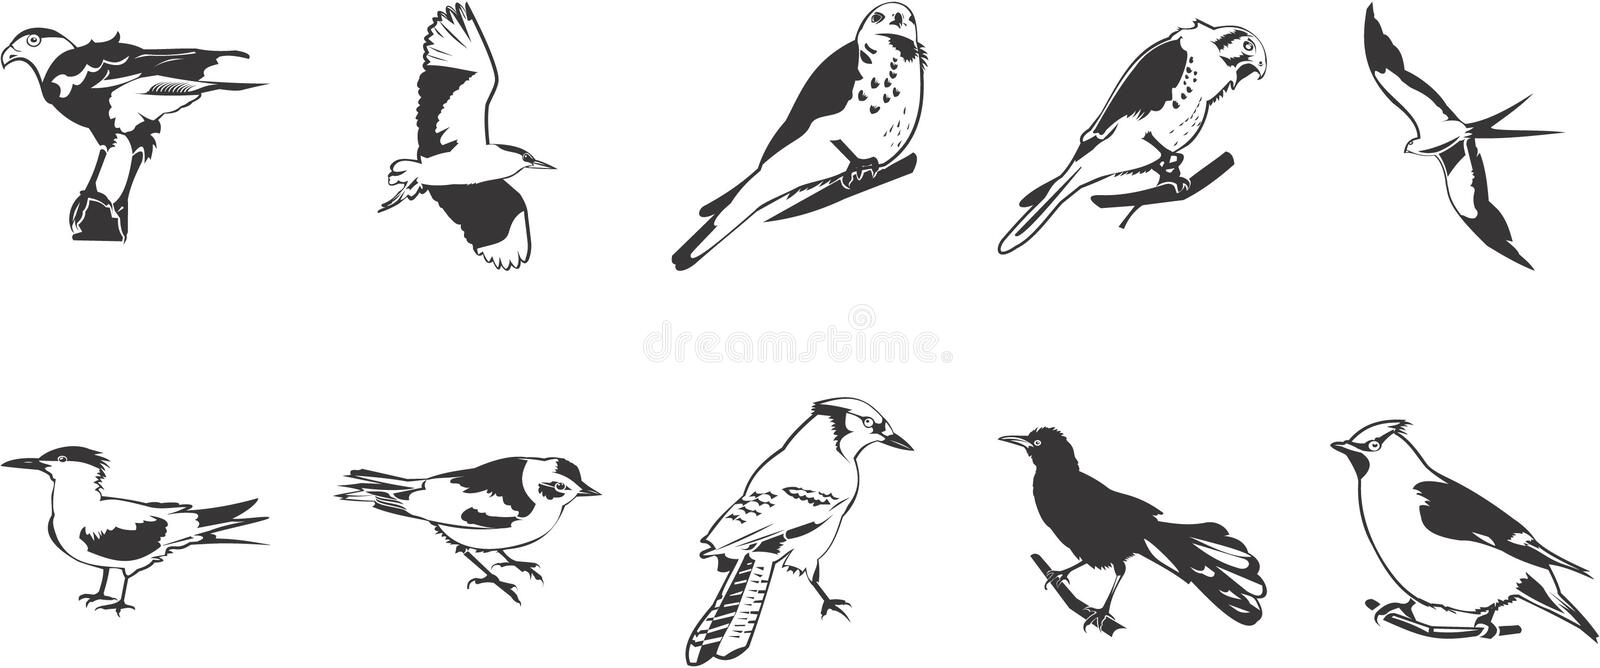 Diverse Vogels vector illustratie